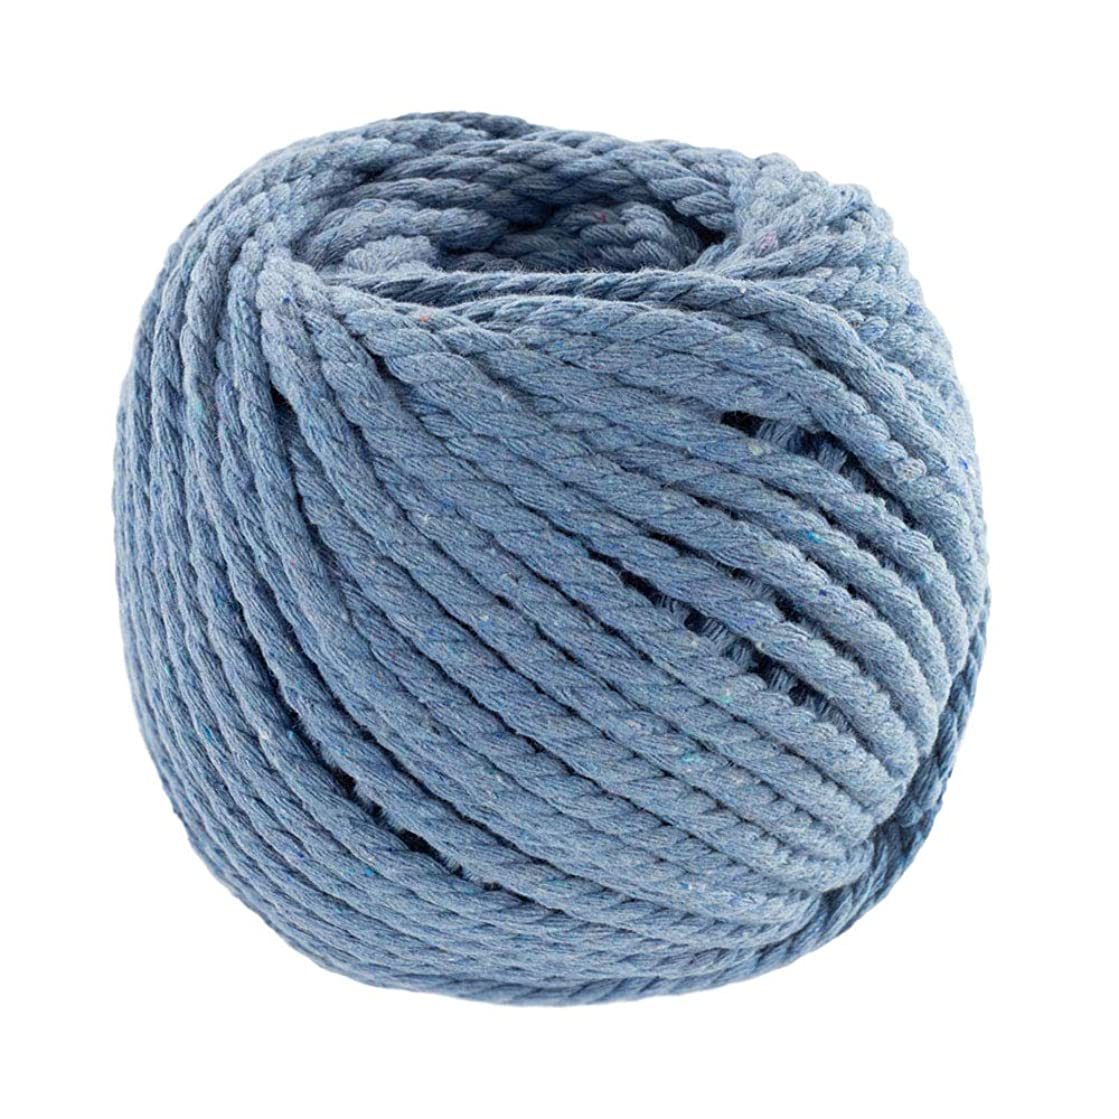 Craft County DIY Crochet, Knitting, and Macramé Cotton Rope – for Handmade Decorations, Wall Hangings, Plant Hangers, and Dream Catchers (Ceil Blue, 5mm X 50 Meters)